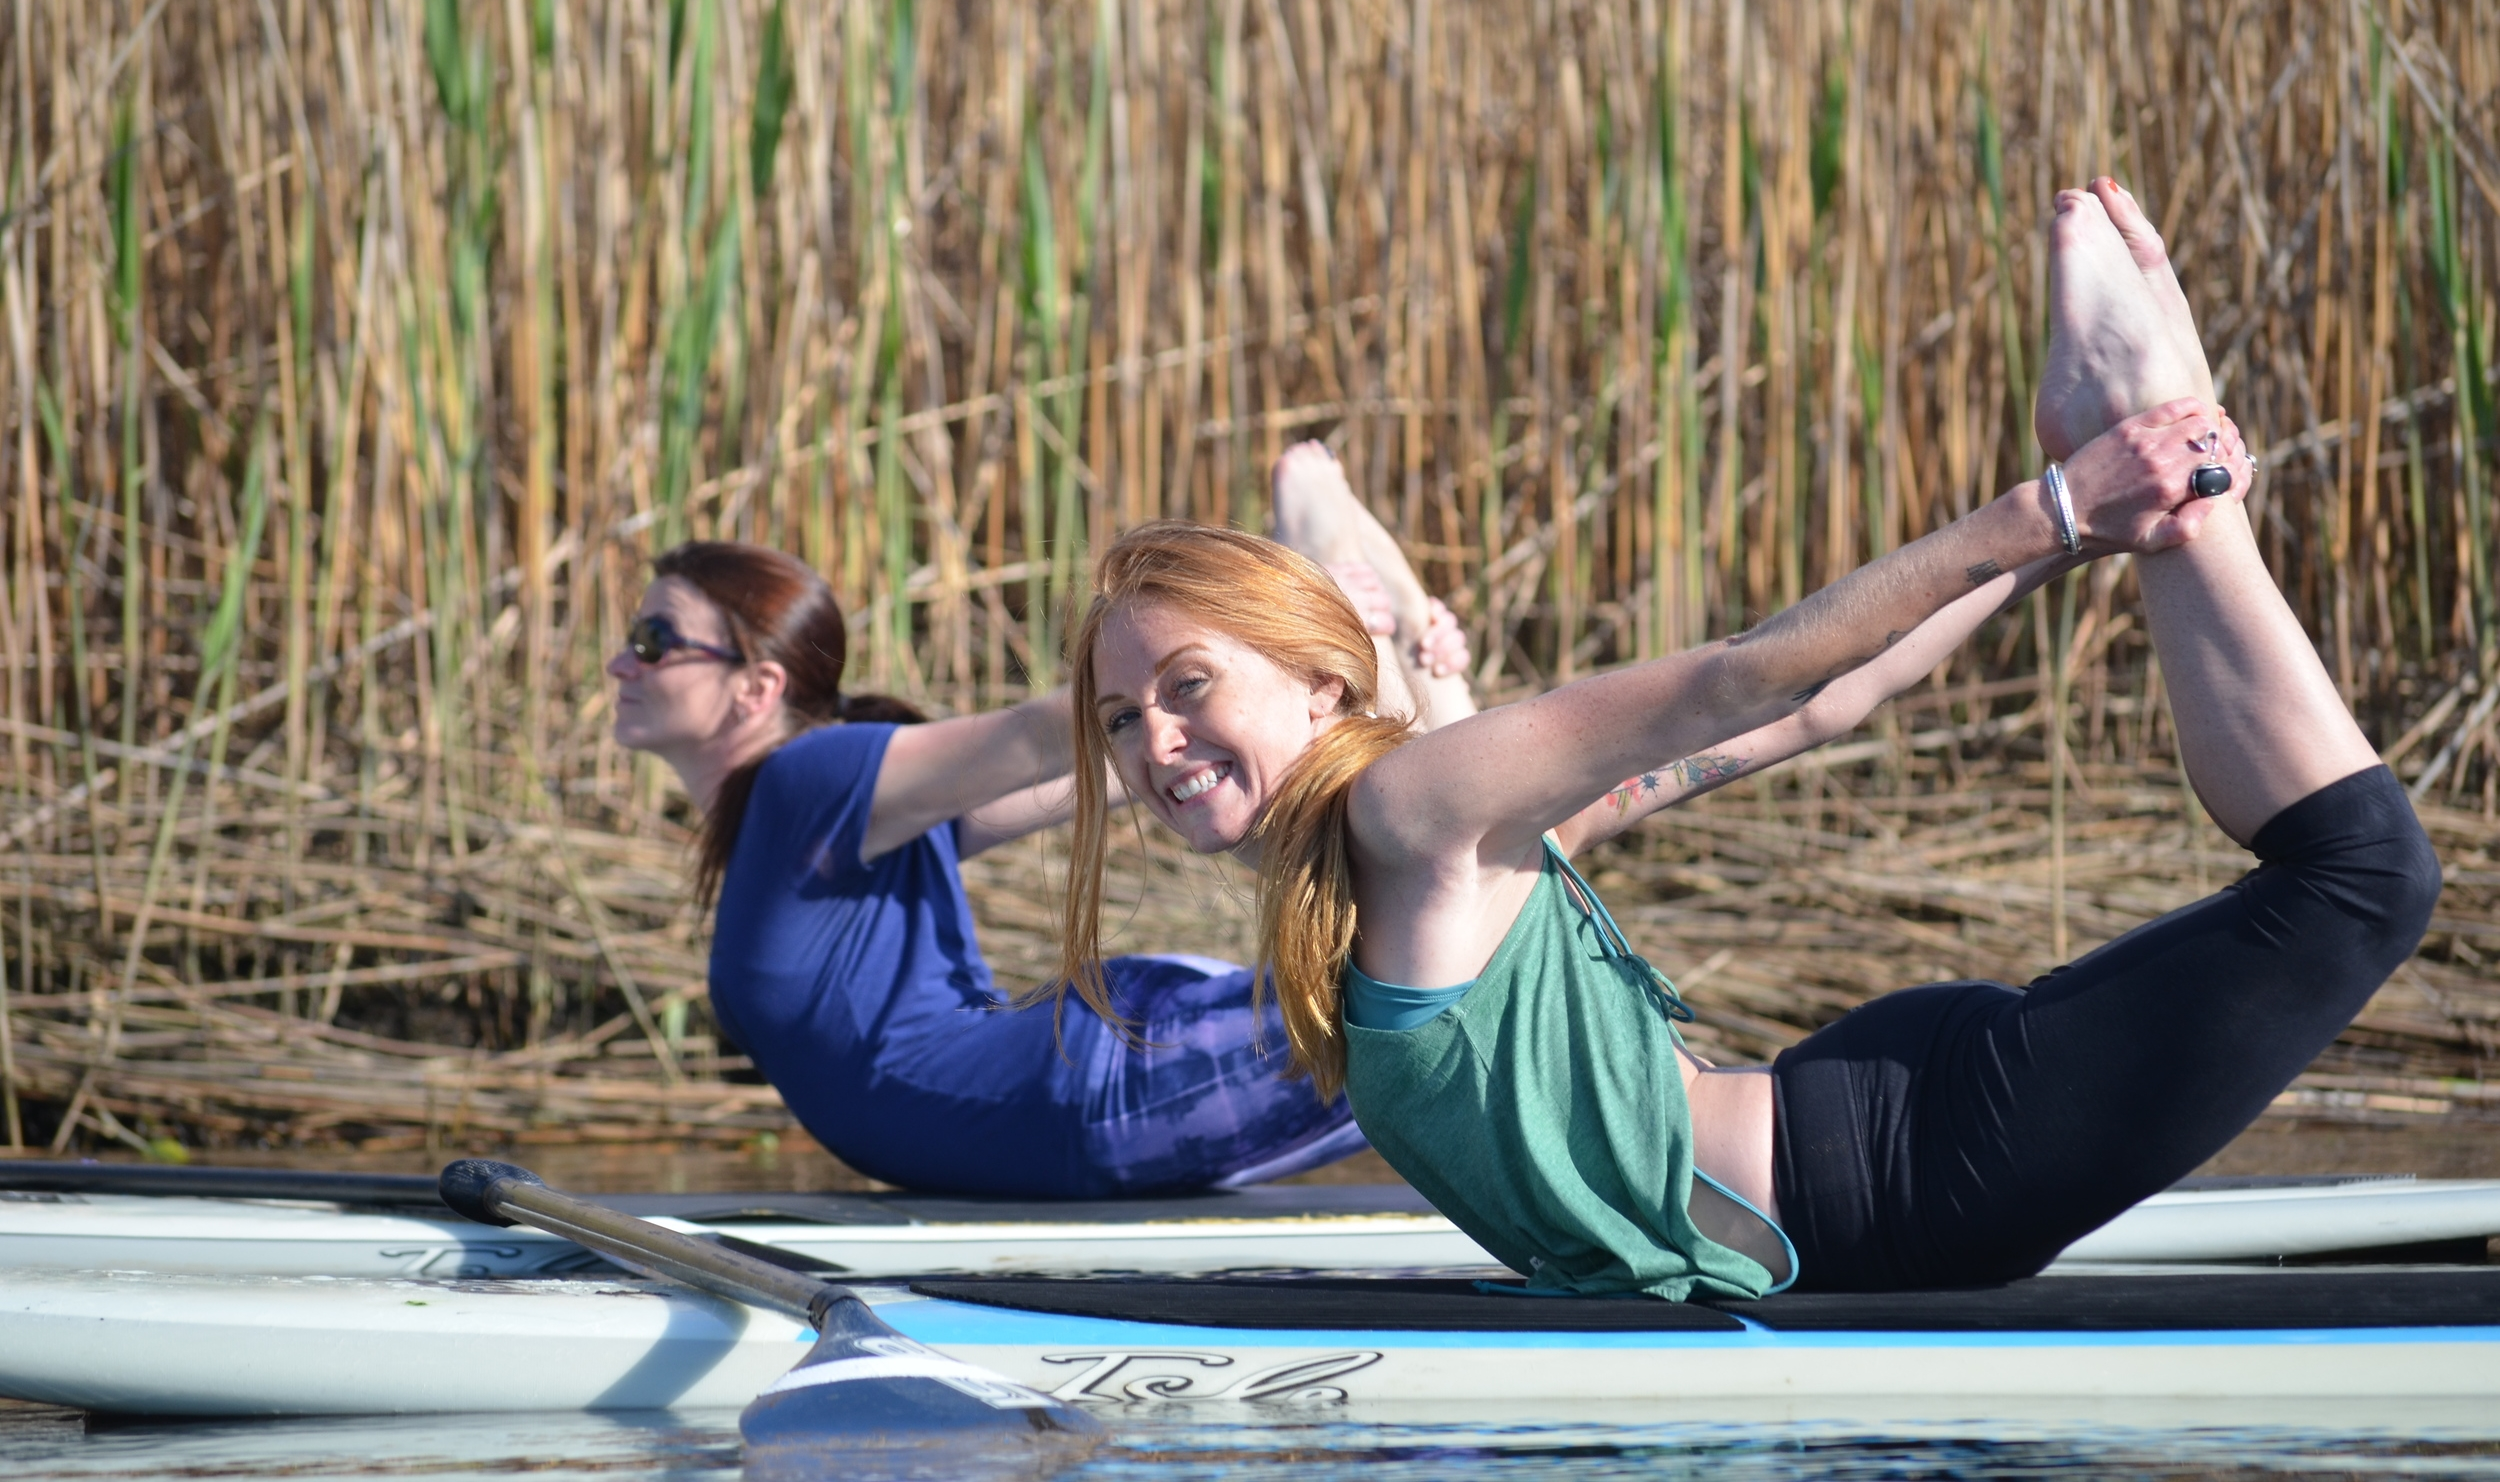 paddle board yoga ri, stand up paddle yoga westerly,